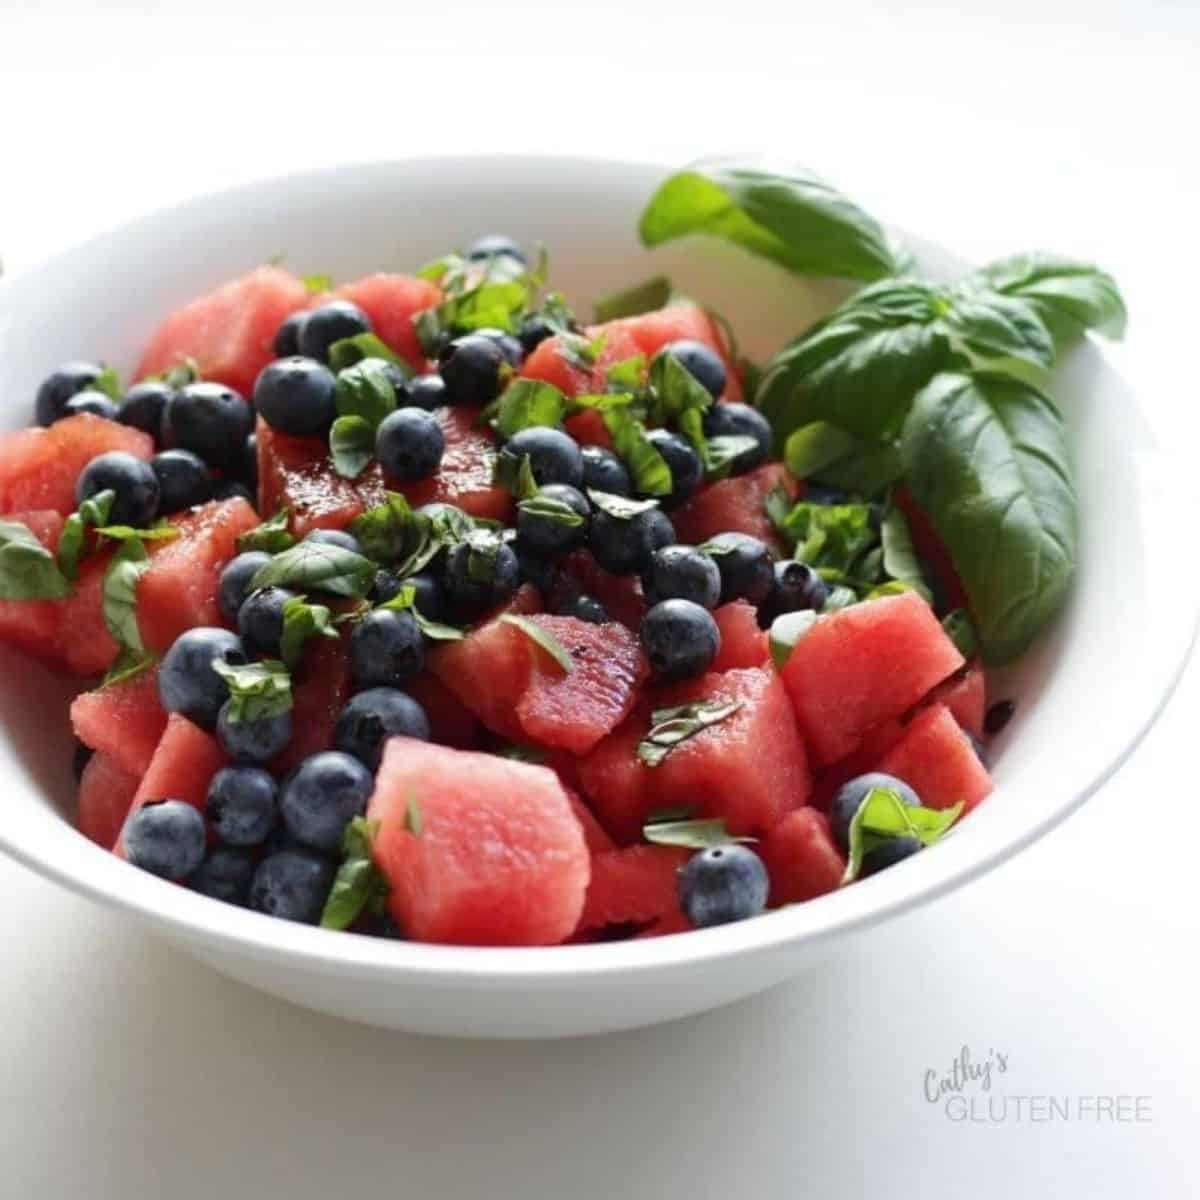 watermelon chunks, blueberries, and chopped basil in white bowl